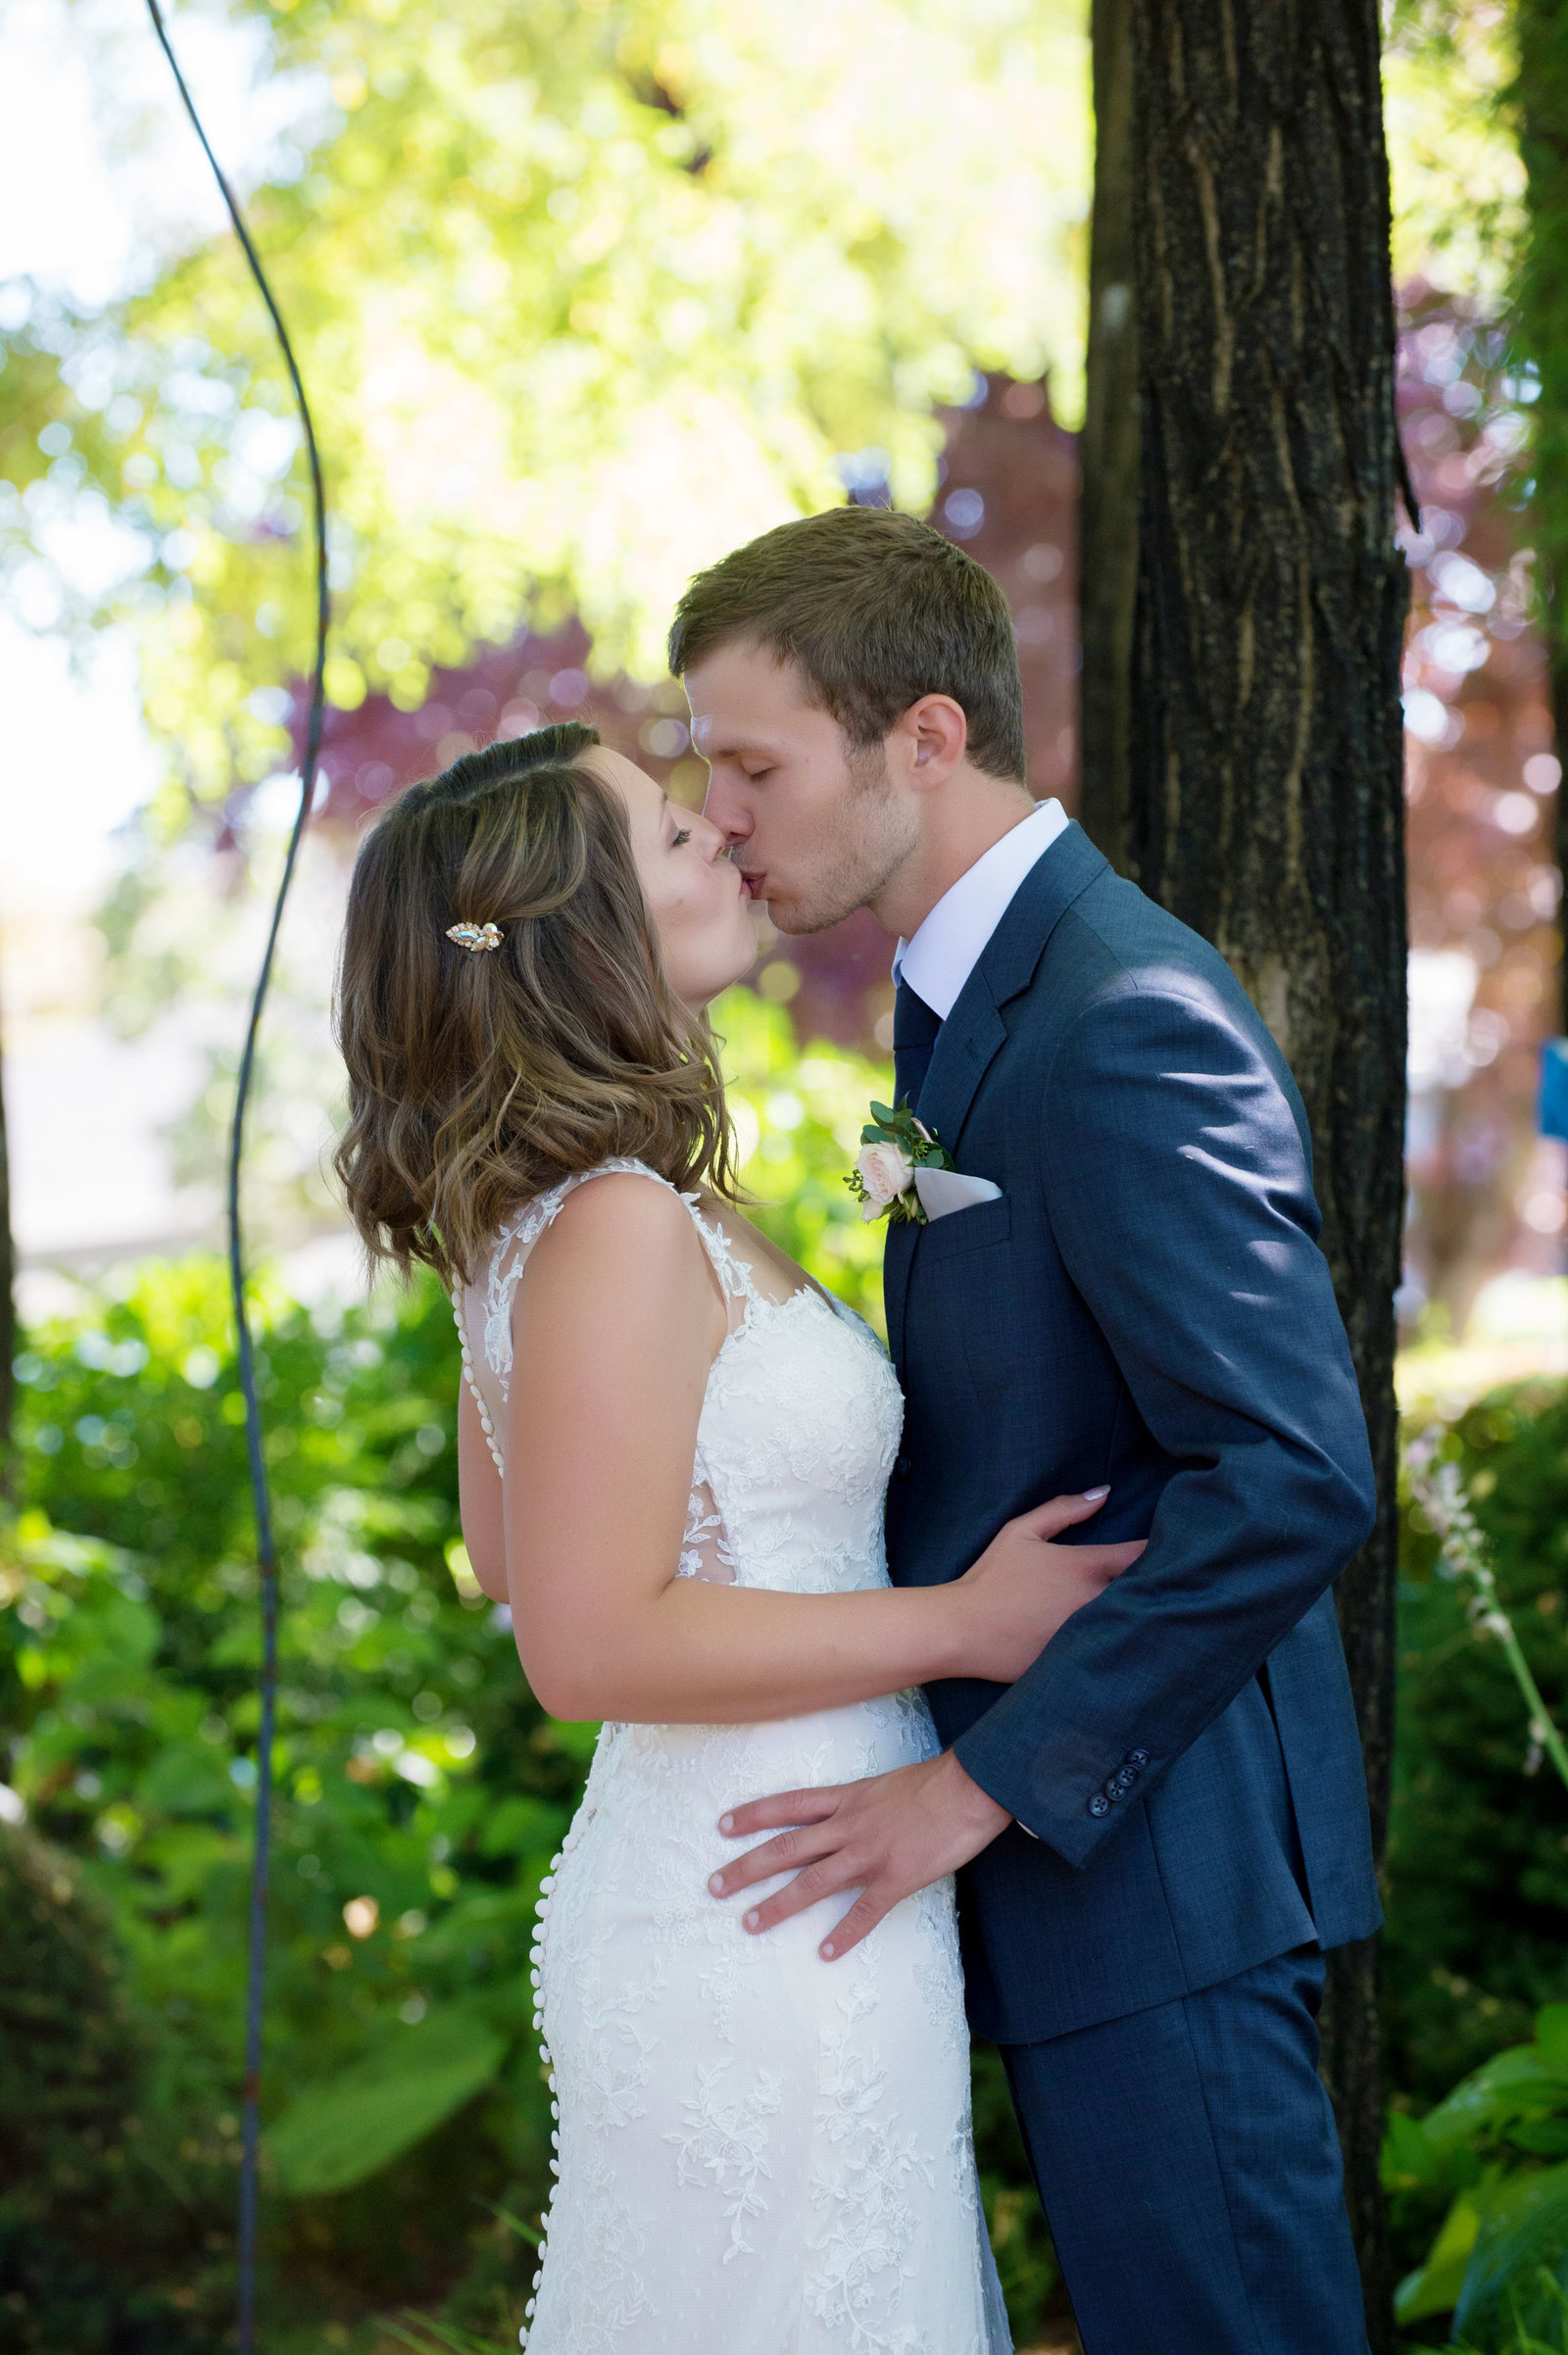 Crystal Genes Photography AINSWORTH HOUSE WEDDING170730-160442